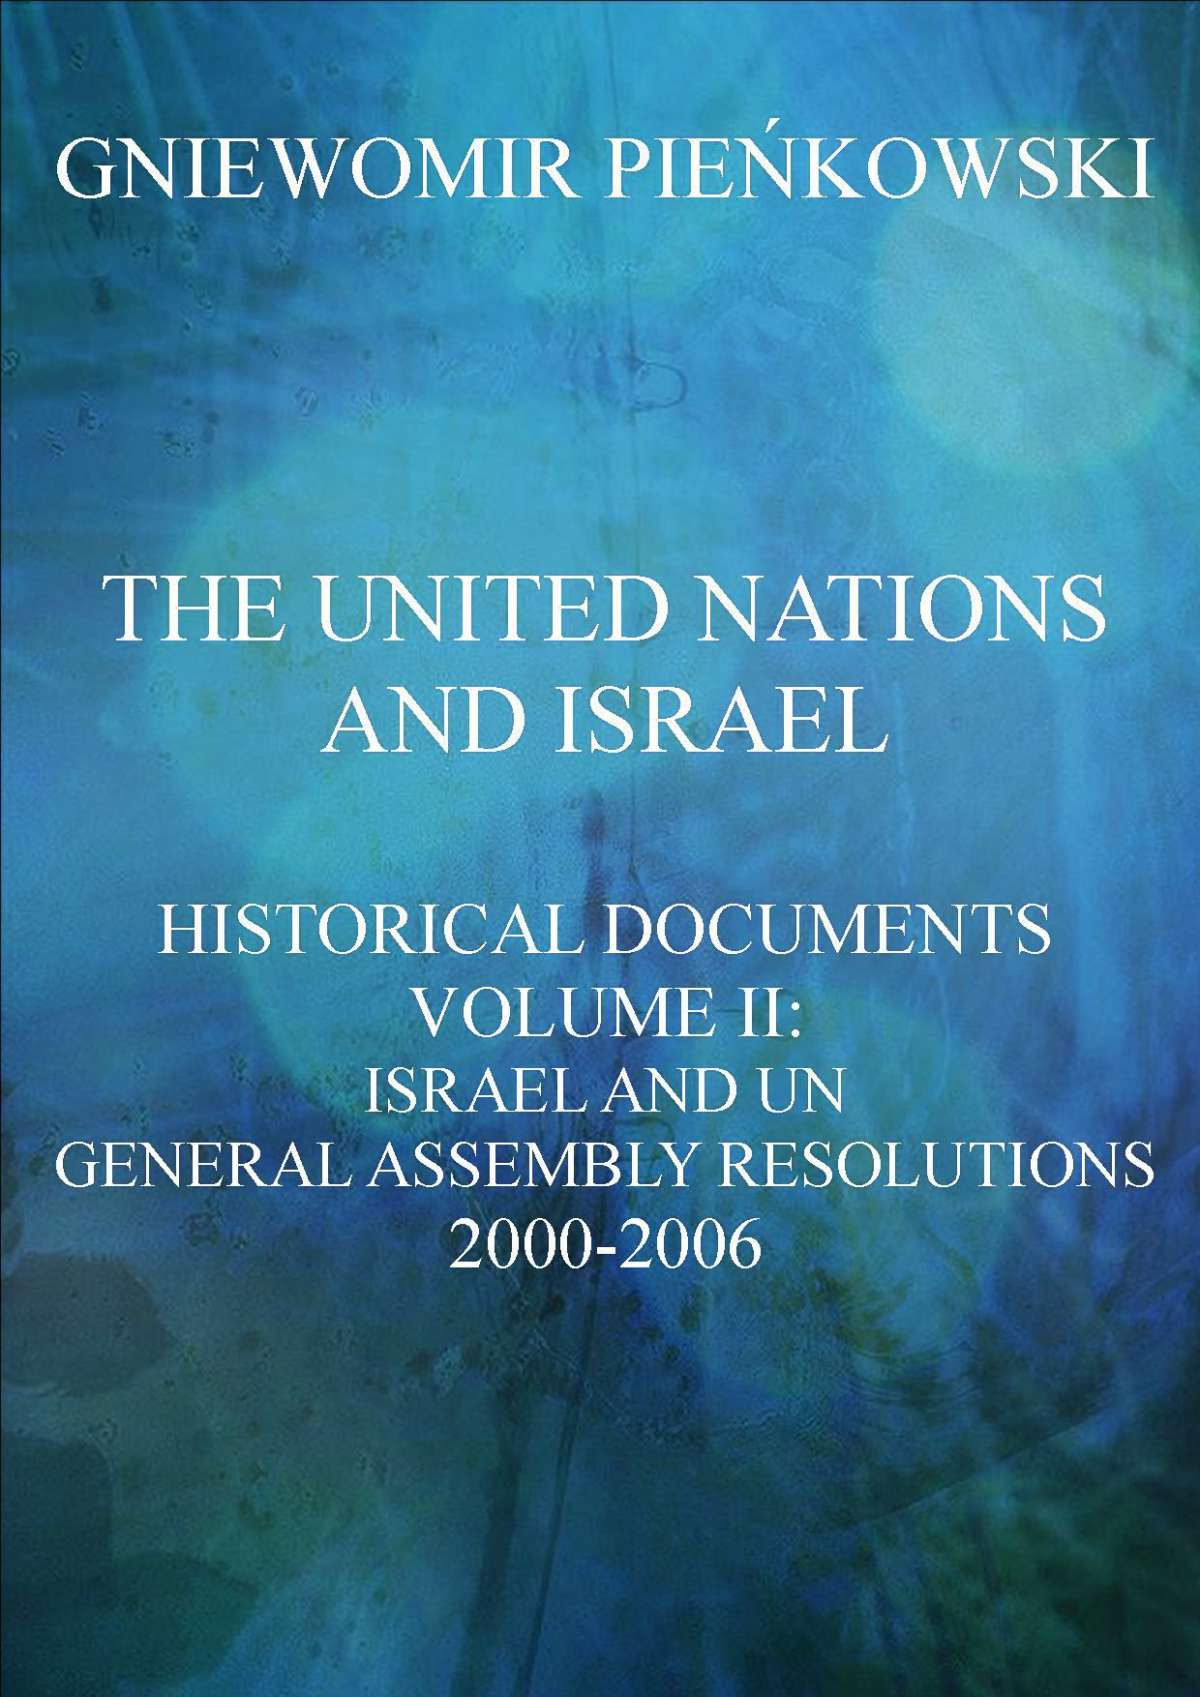 The United Nations and Israel. Historical Documents. Volume III: Israel and UN General Assembly Resolutions 2000-2006 - Ebook (Książka PDF) do pobrania w formacie PDF